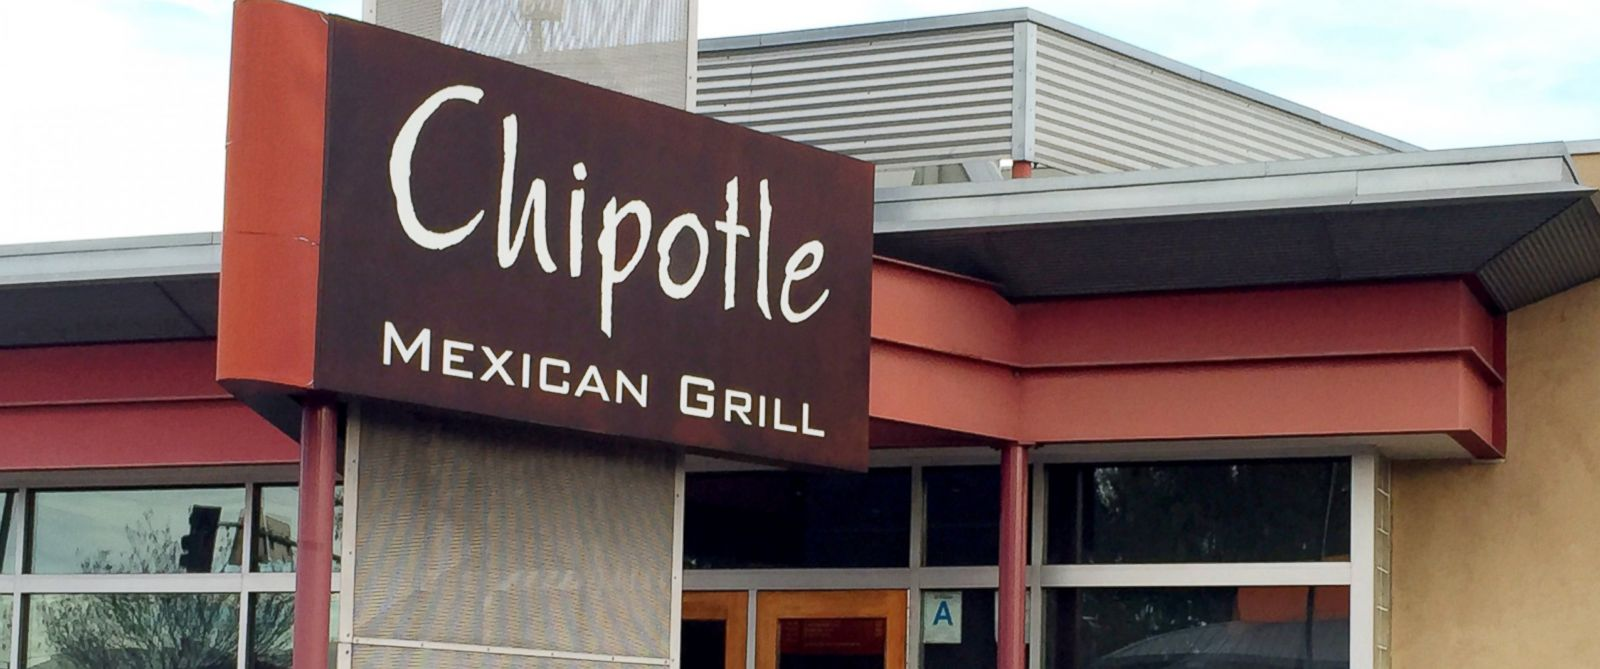 PHOTO: A Chipotle Mexican Grill restaurant in Lakewood, Calif., Jan. 26, 2015.